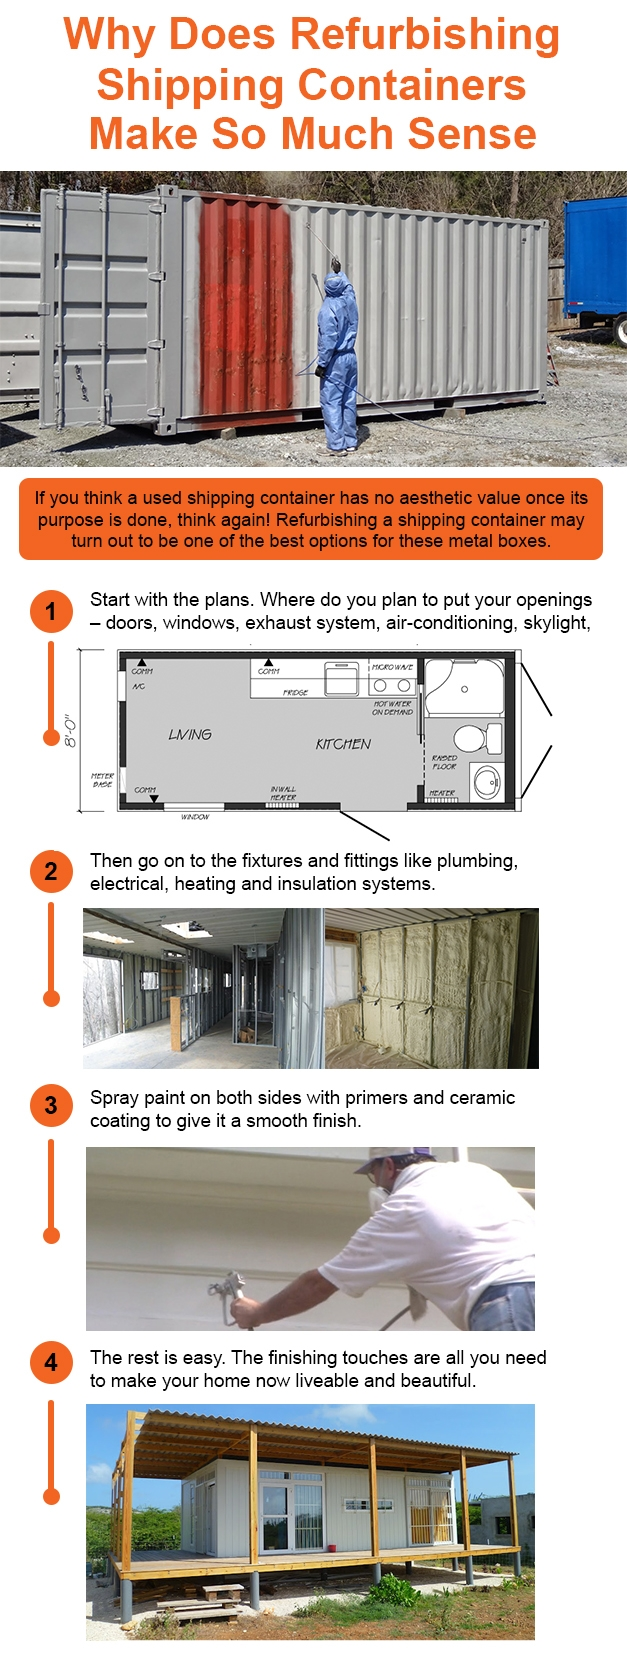 Modern Ideas On How To Refurbish Shipping Containers To Make A House